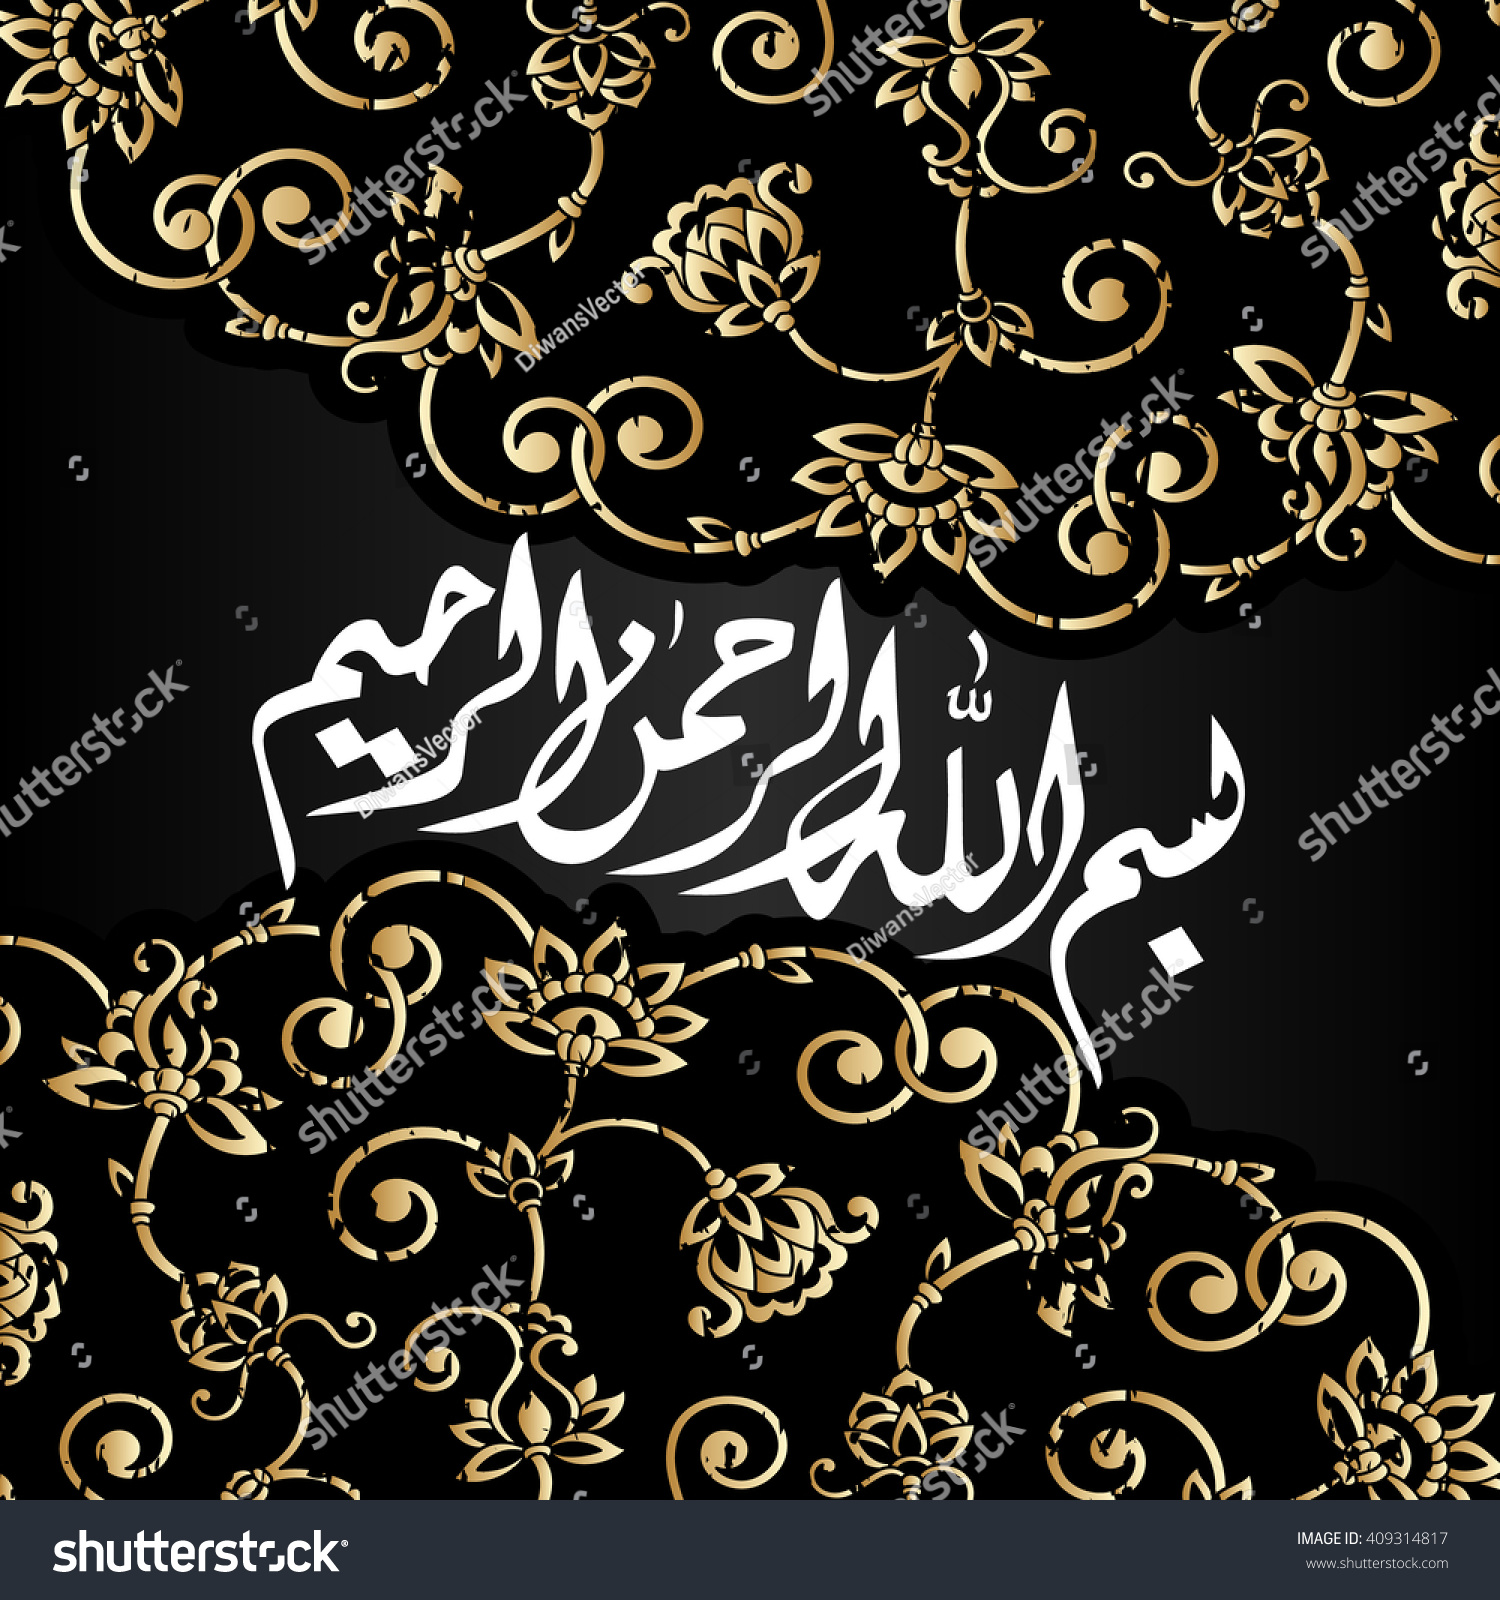 Vector arabic calligraphy basmala bismillah beautiful Images of calligraphy